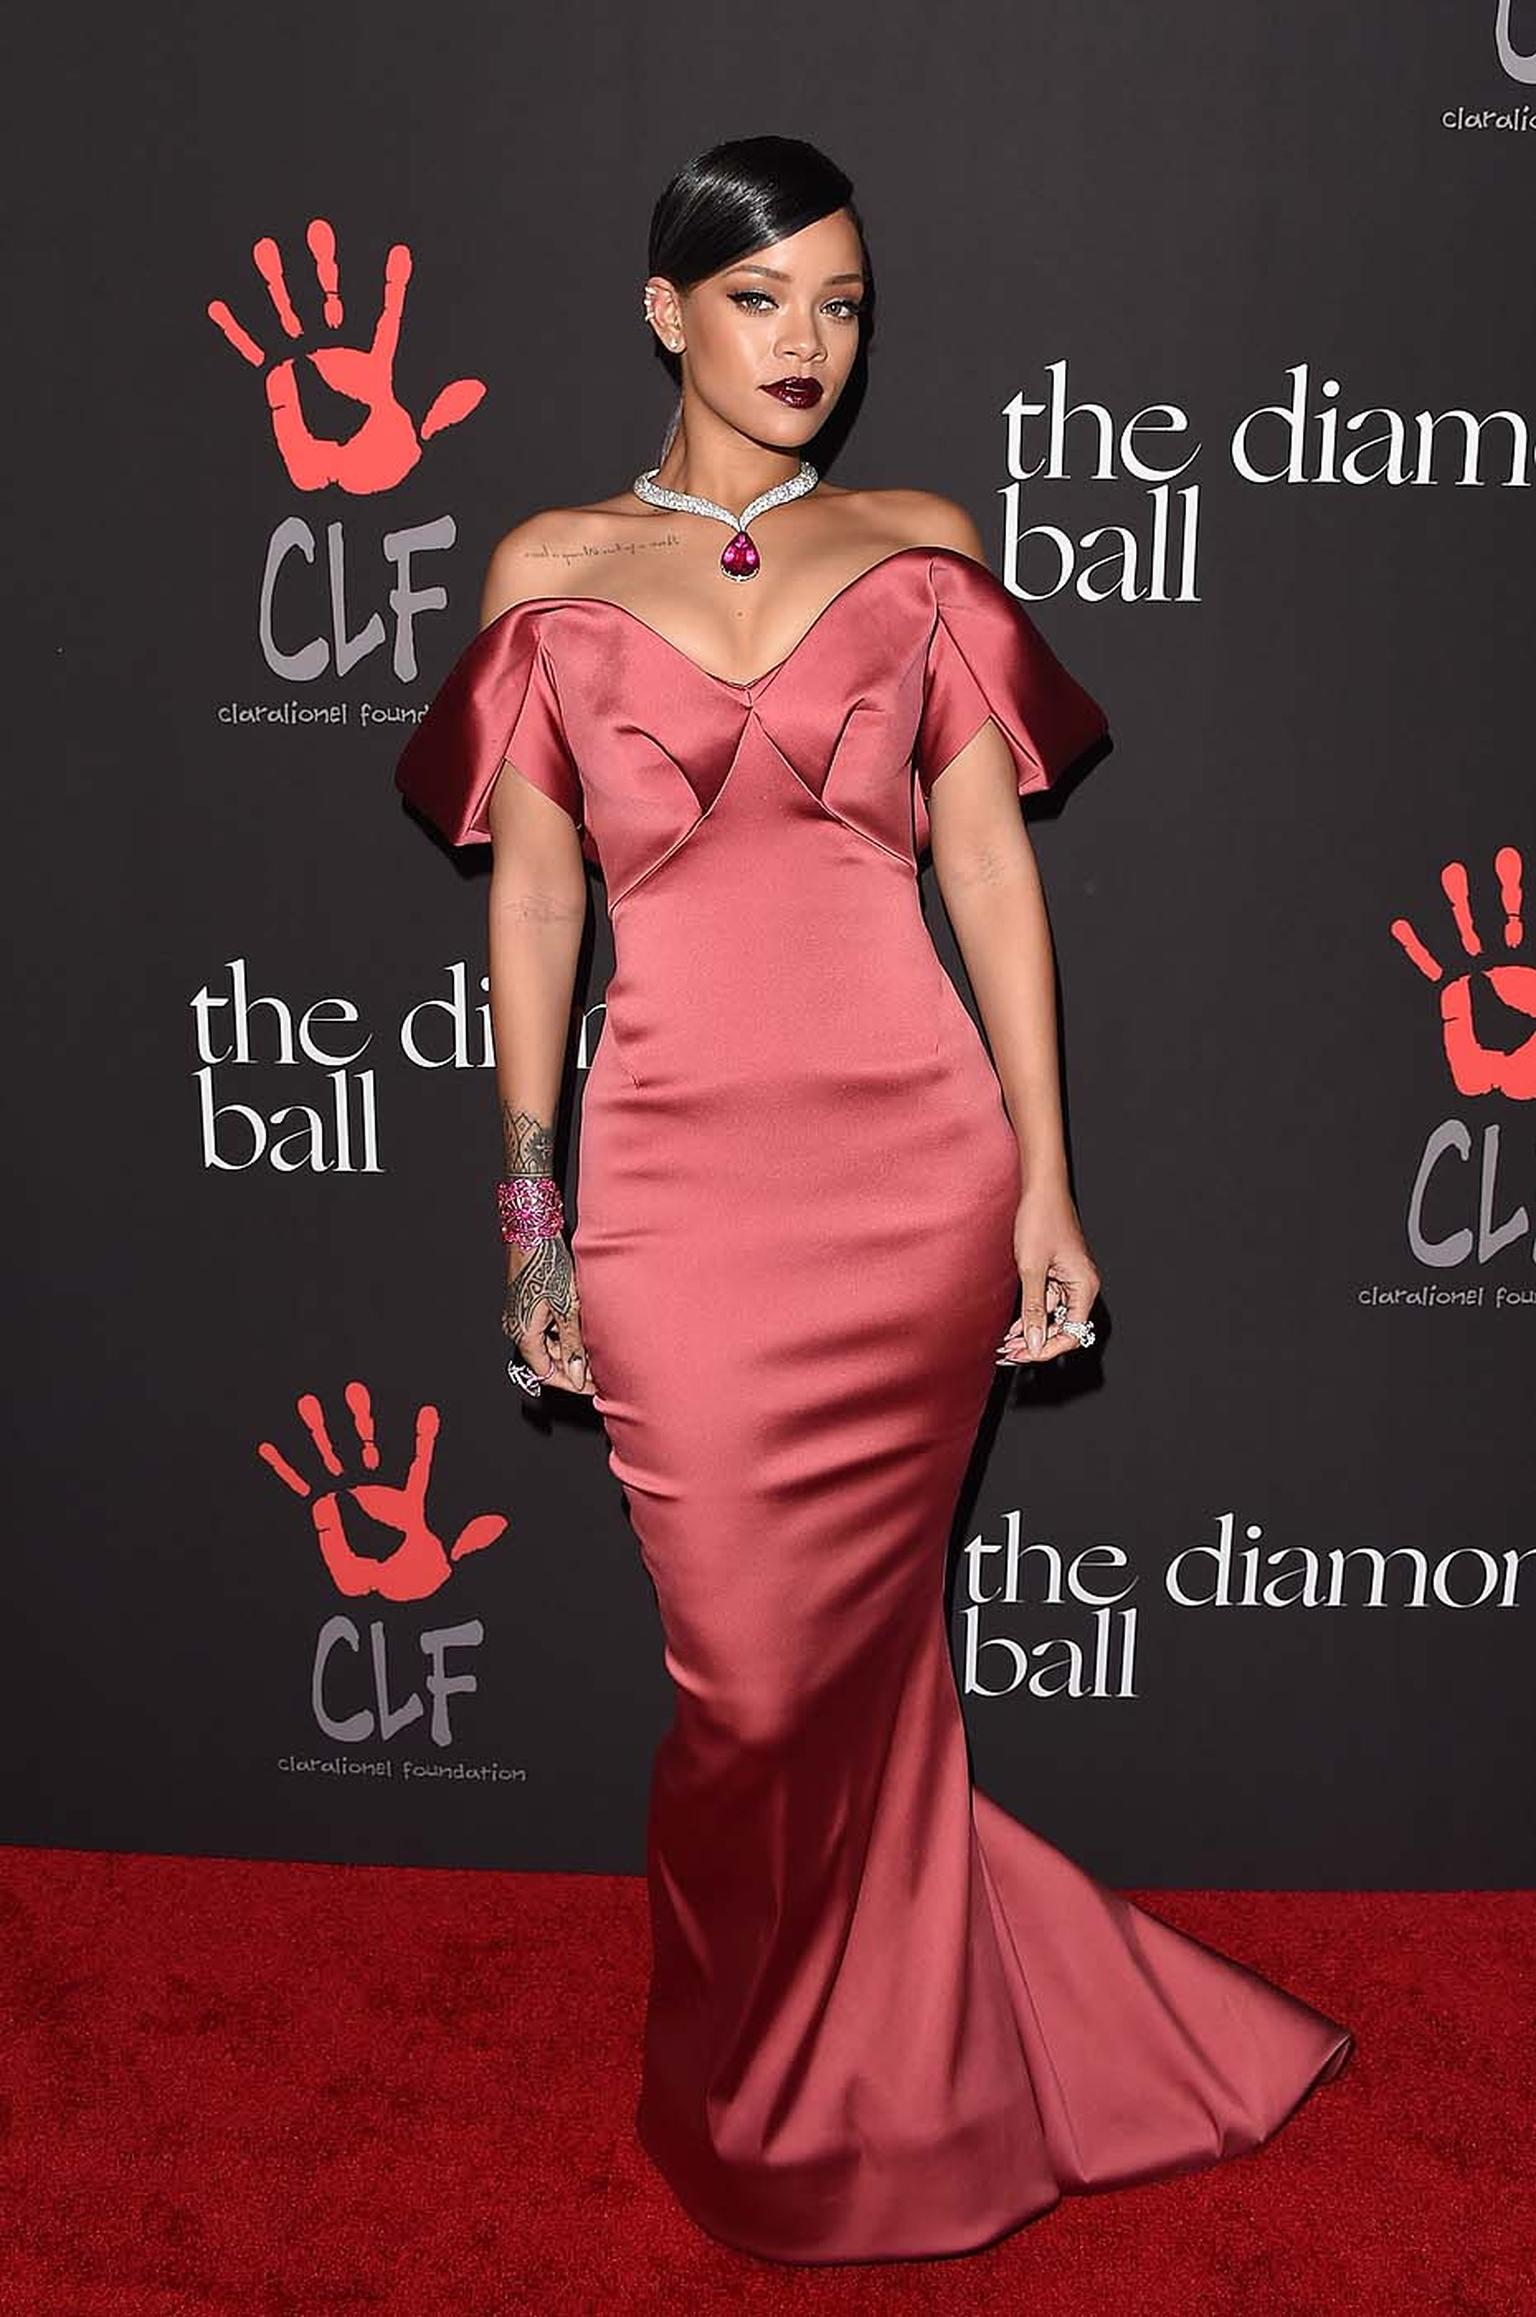 Glamorous in a highly feminine Hollywood star look, Rihanna accessorised her Zac Posen off-the-shoulder rose satin gown with Chopard high jewellery from the Red Carpet Collection.